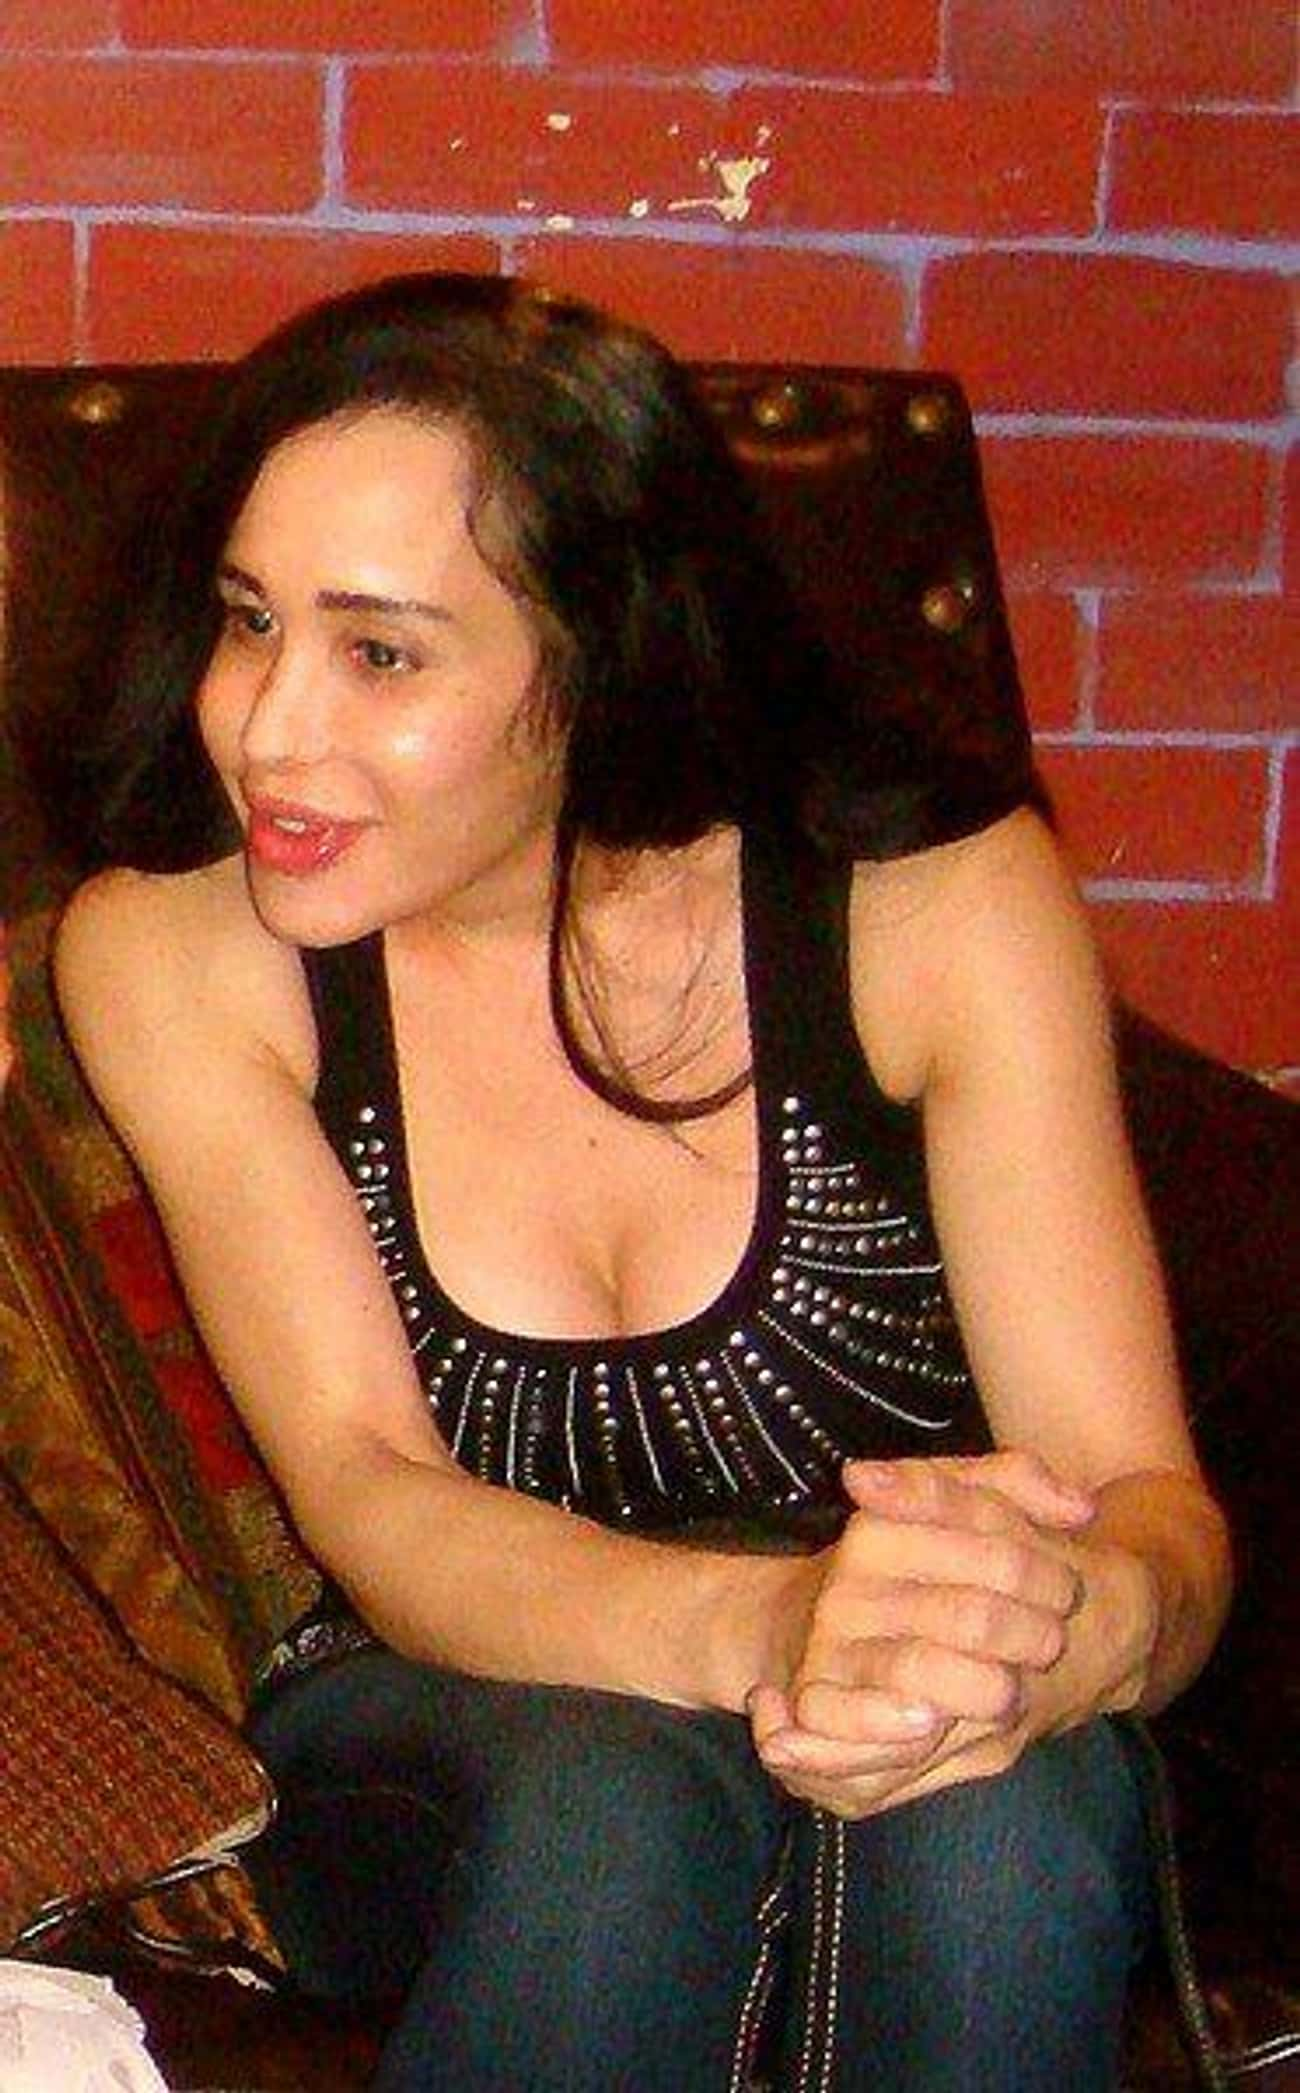 She Said Her Children Were Ani is listed (or ranked) 1 on the list Things You Don't Know About Nadya Suleman, AKA Octomom